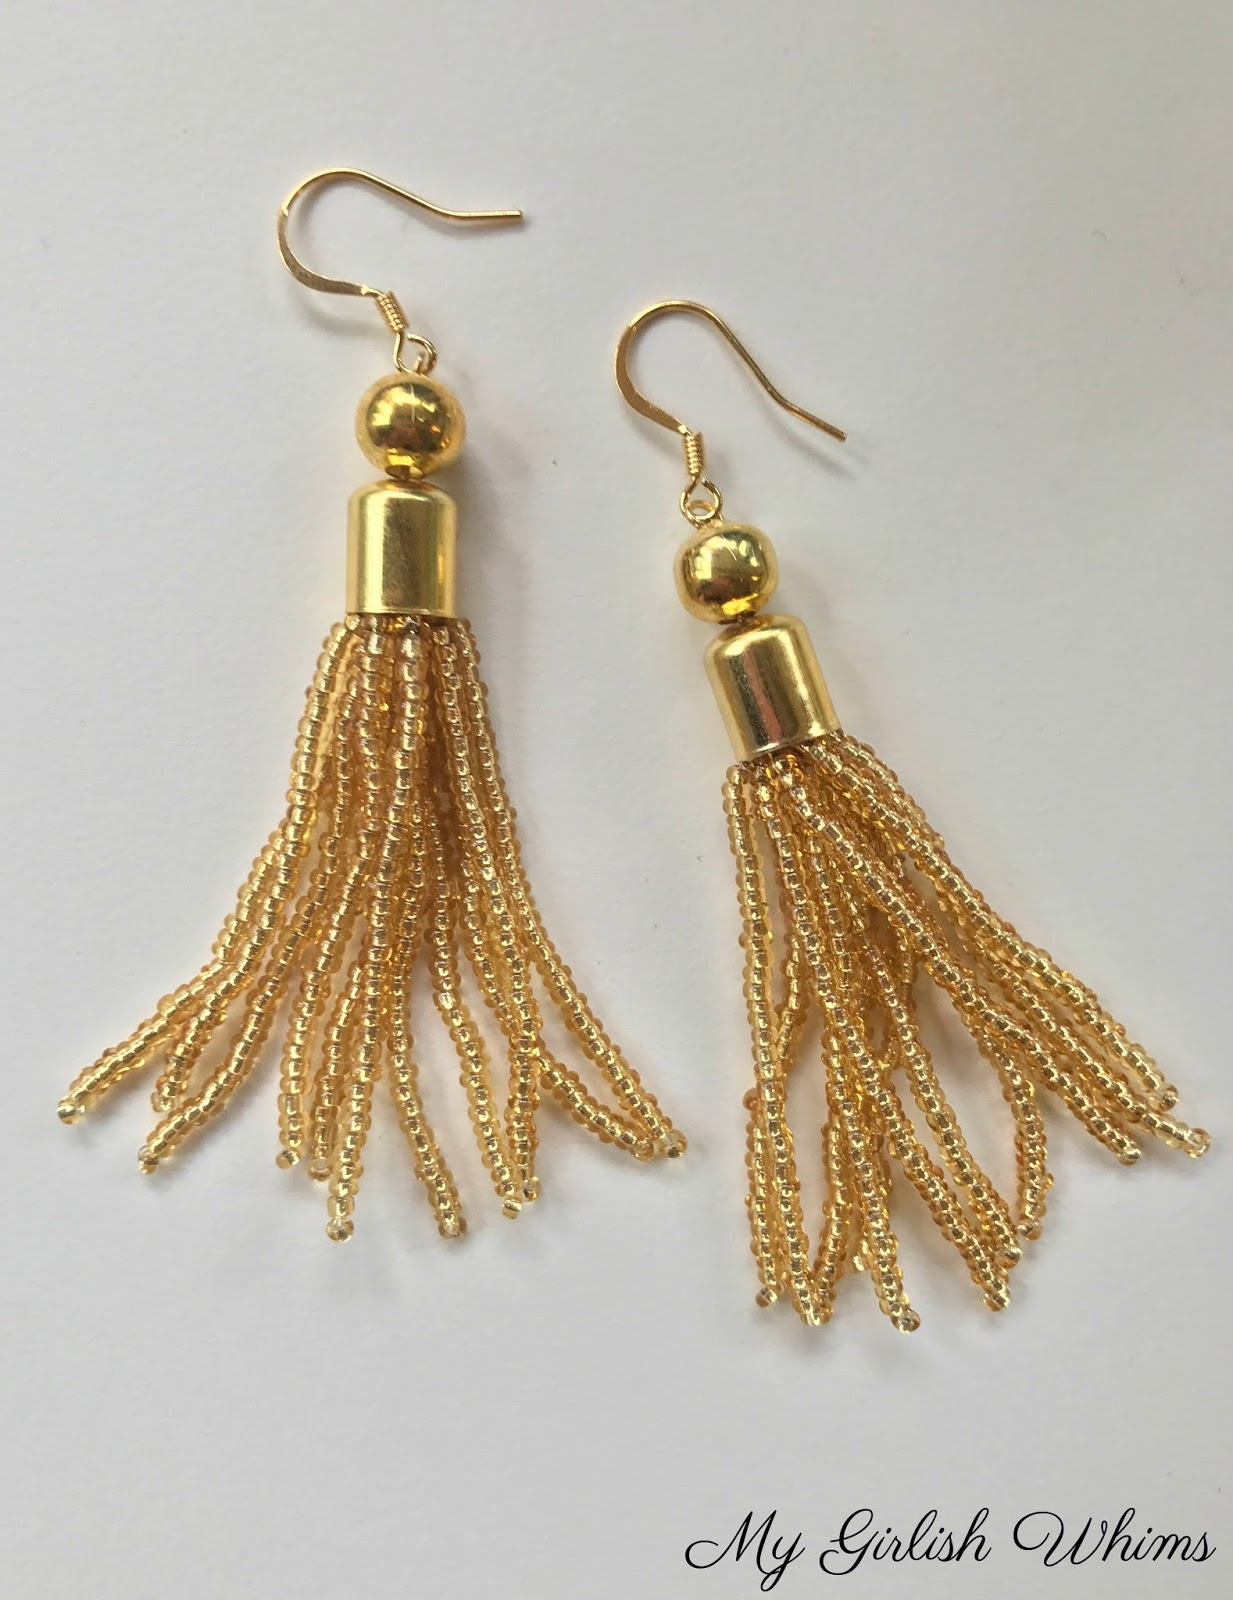 img o glass artelioni earrings beaded jewellery